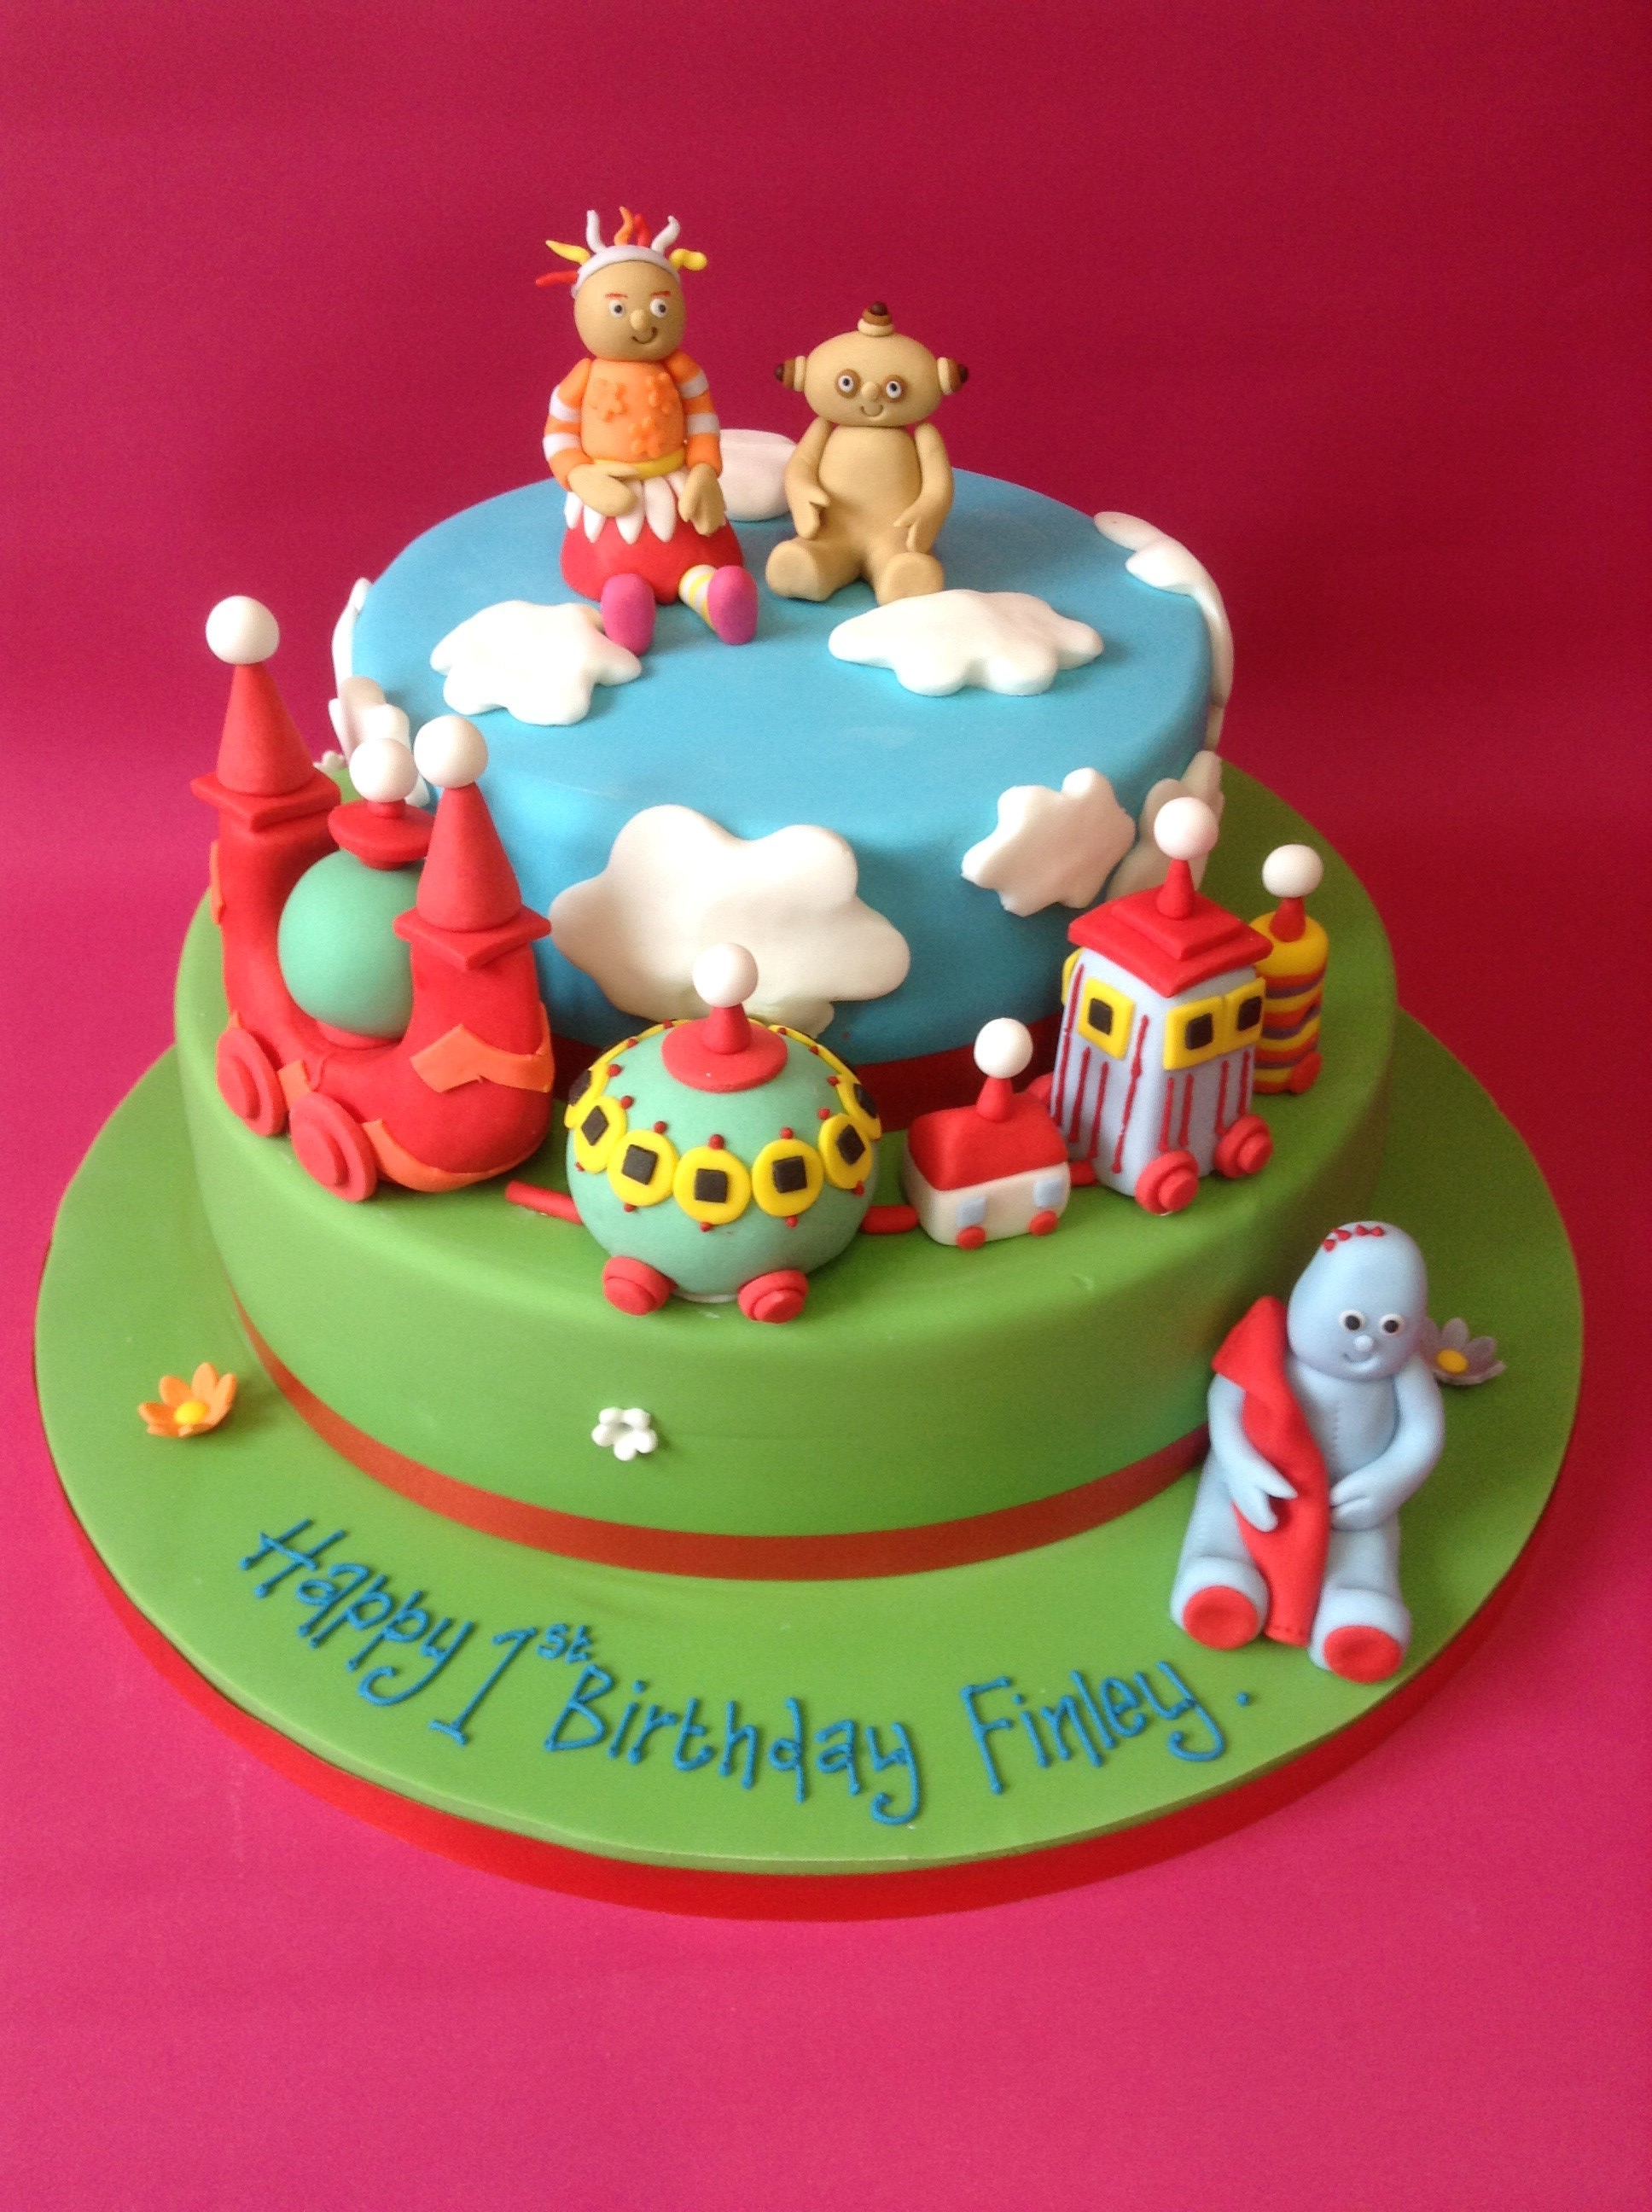 Enjoyable Childrens Birthday Cakes The Little Cake Cottage Personalised Birthday Cards Veneteletsinfo